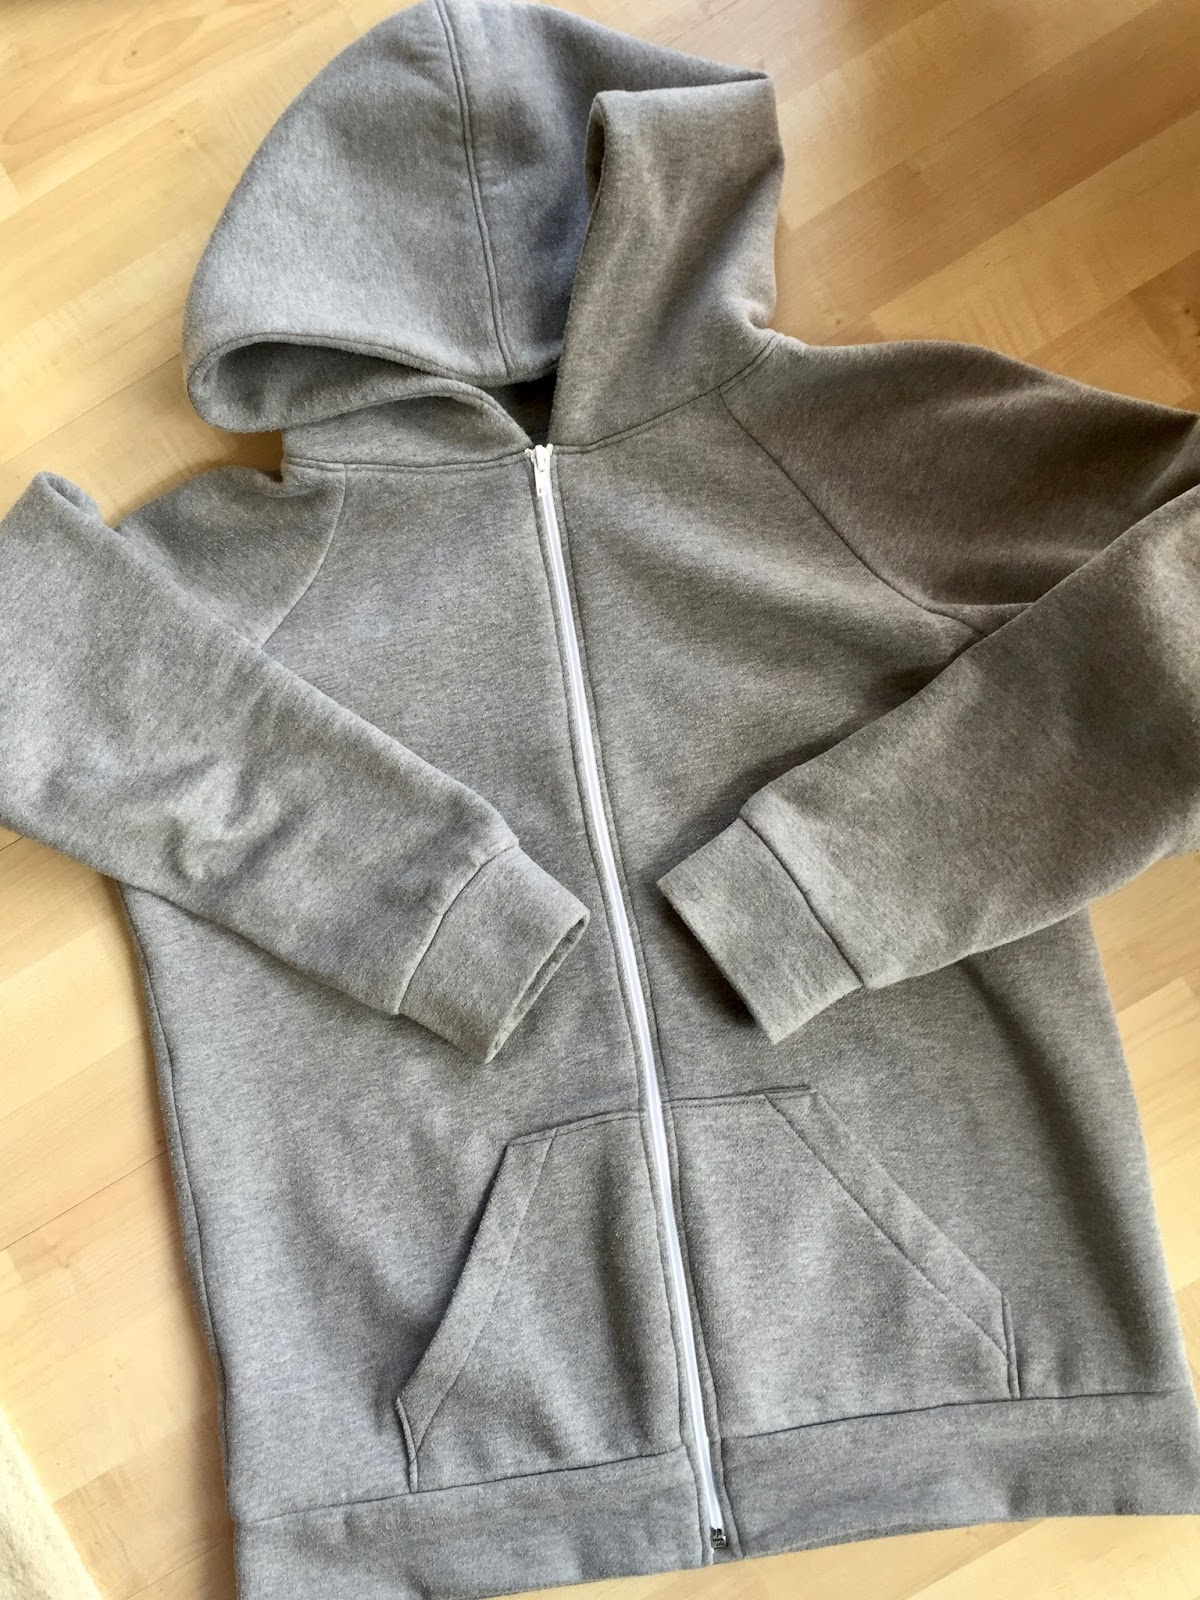 cb115e54 Handmade Gifts: McCalls 6614 Hoodies for Men   Diary of a Chain ...